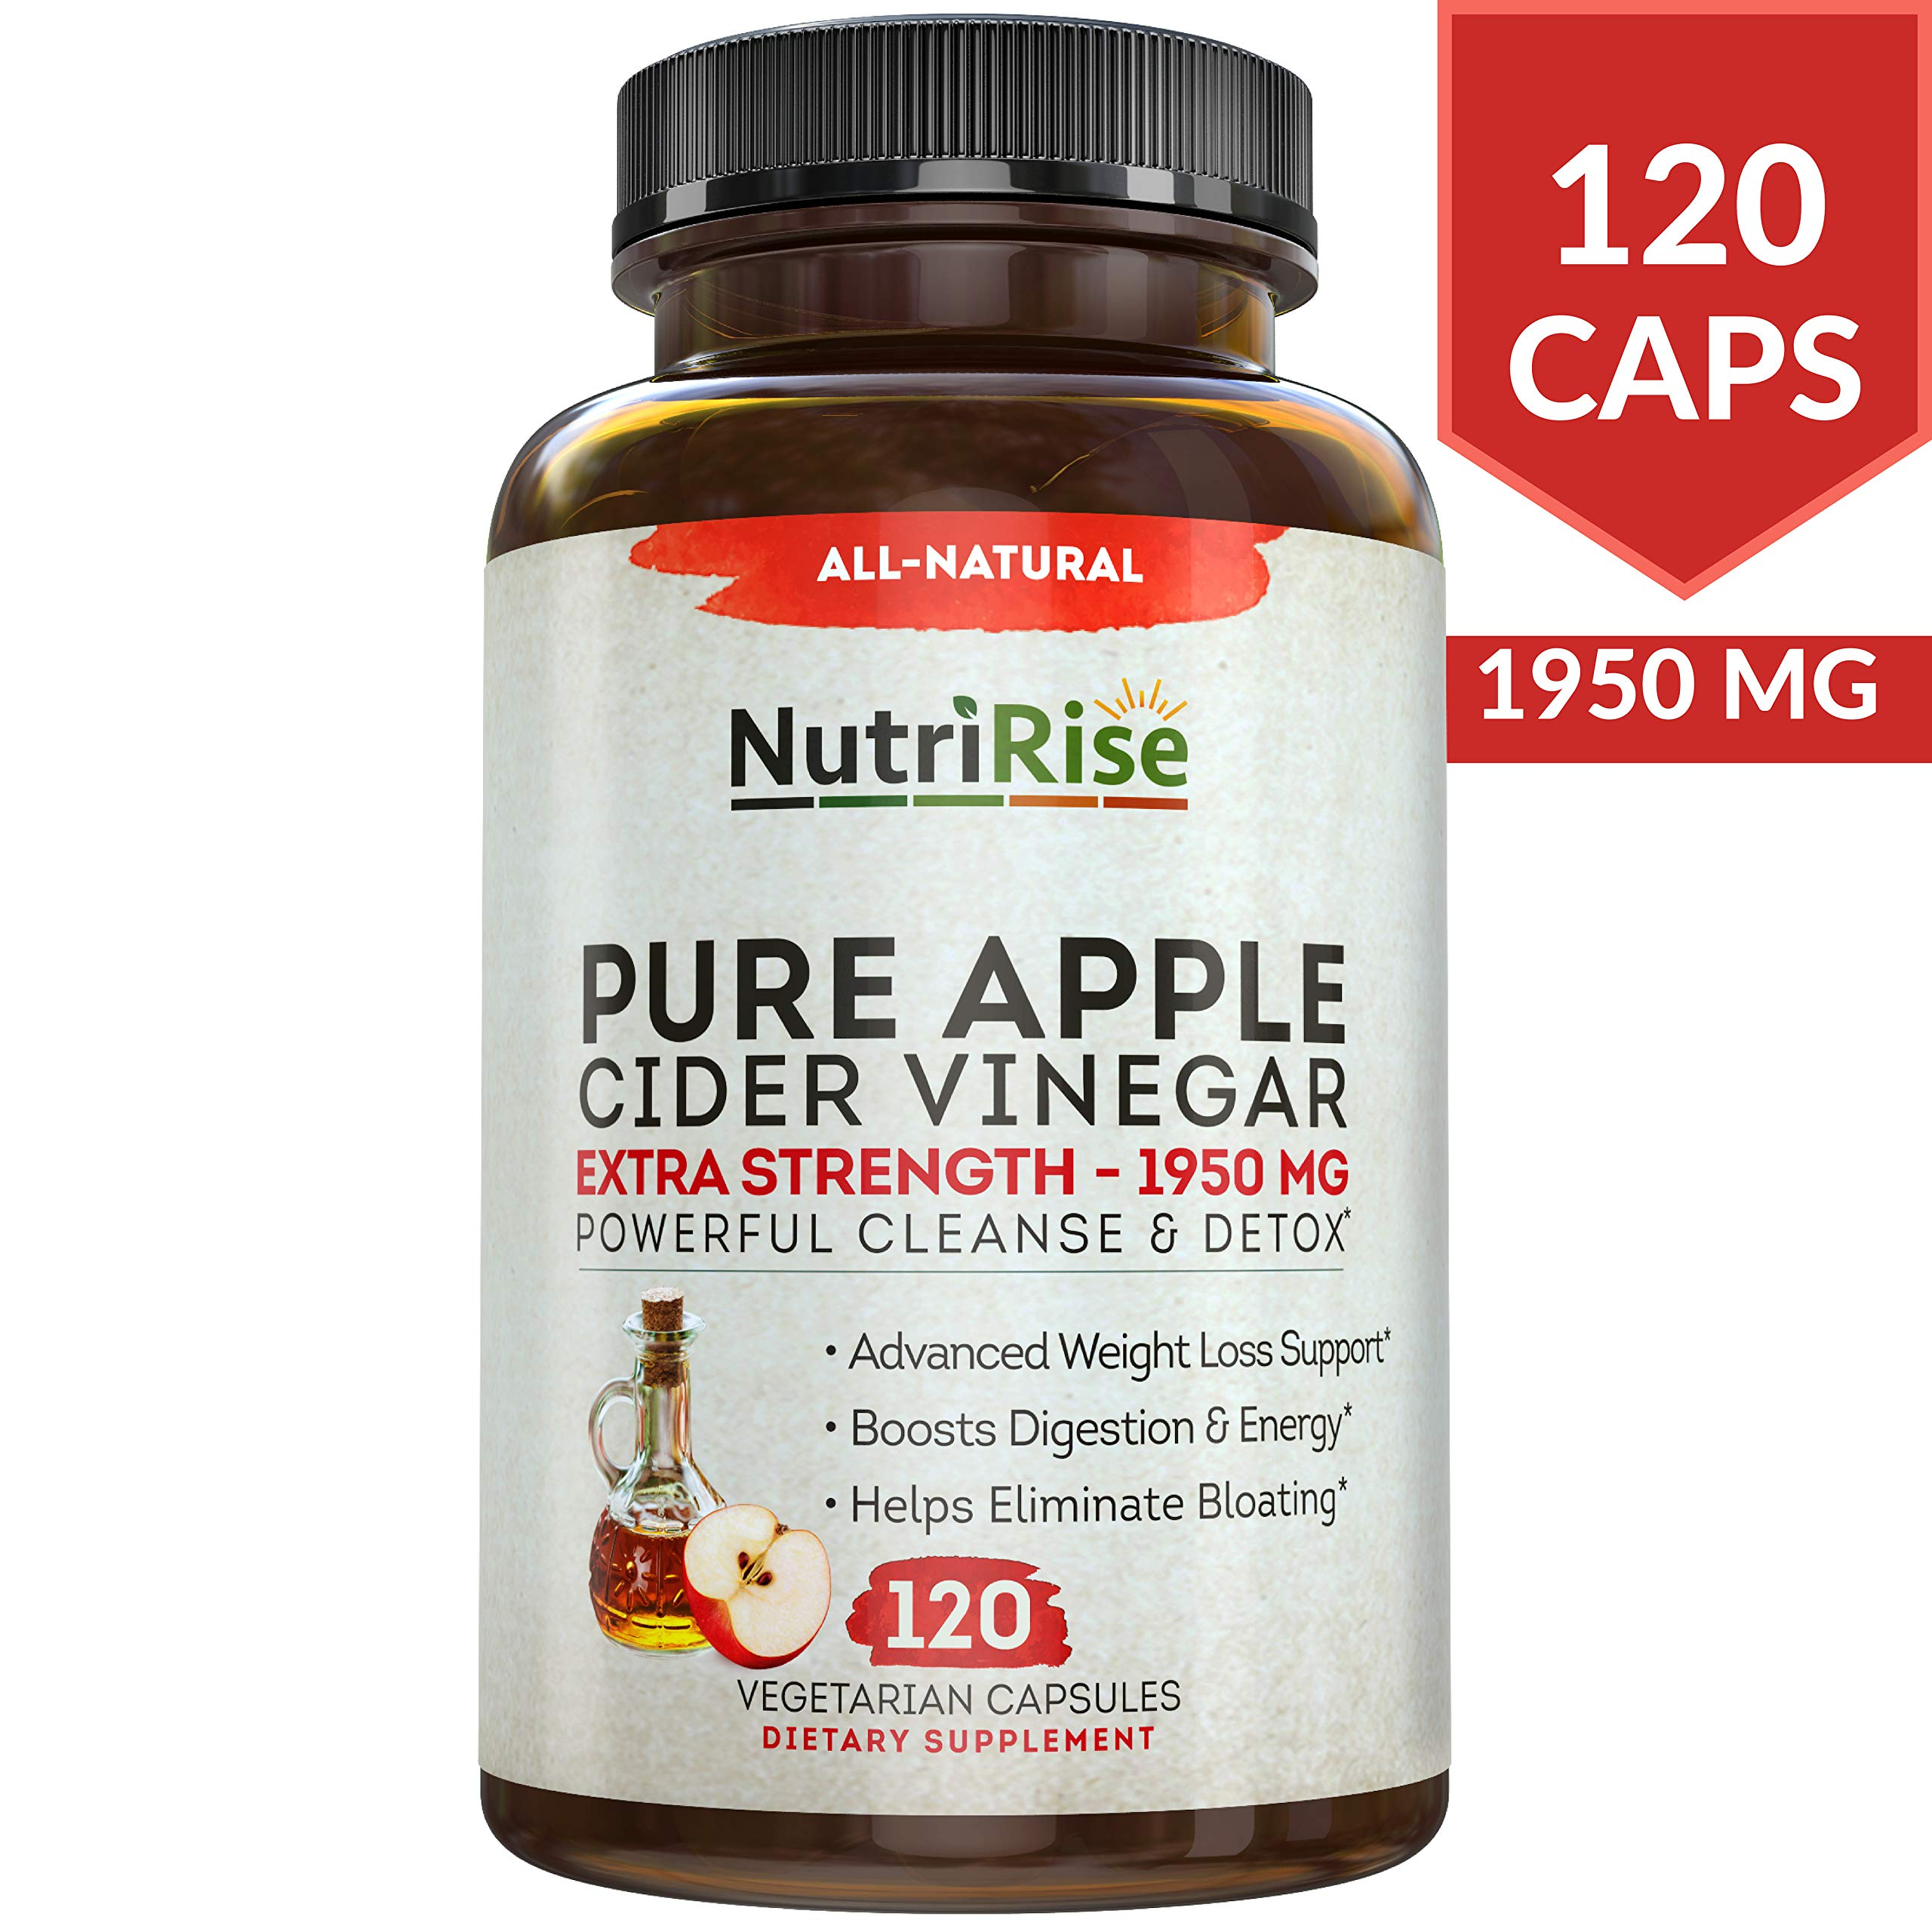 Apple Cider Vinegar Capsules for Weight Loss & Cleanse - 100% Pure Extra Strength 1950mg - 120 Natural Diet Pills for Women & Men for Bloating & Constipation Relief, Digestion & Energy Boost by NUTRIRISE